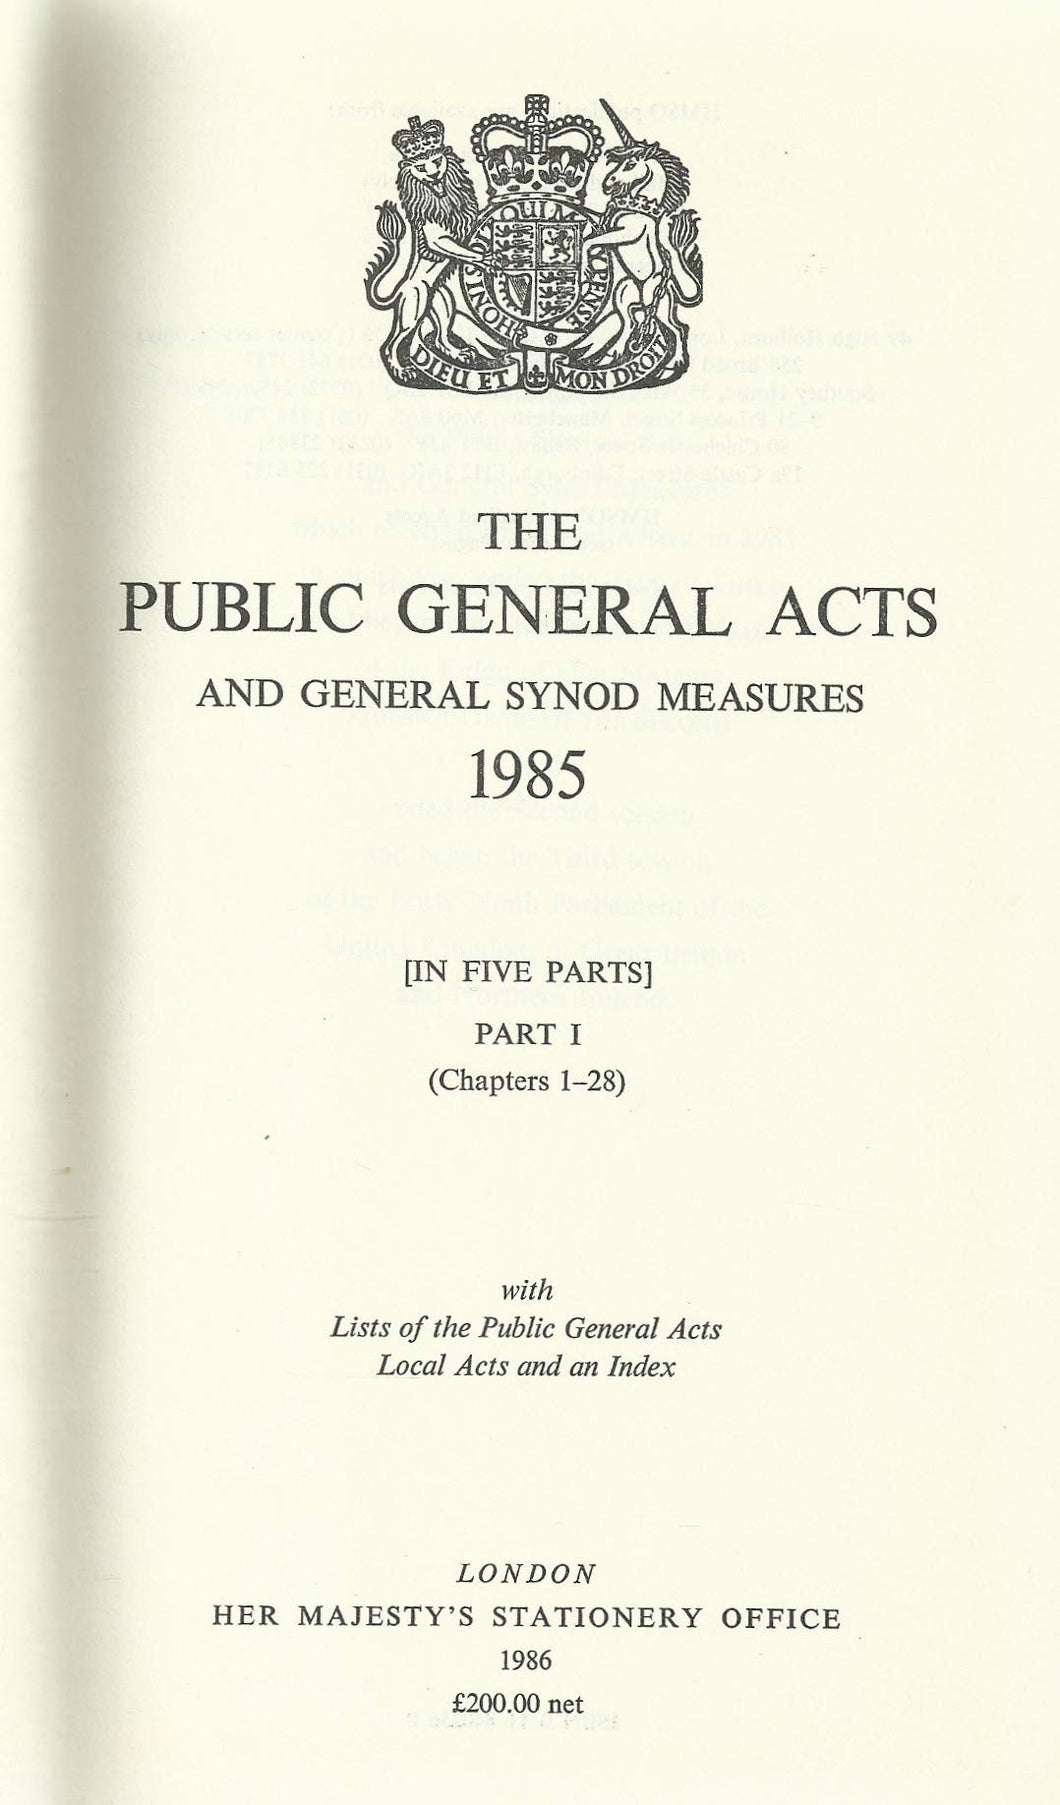 The Public General Acts and General Synod Measures 1985